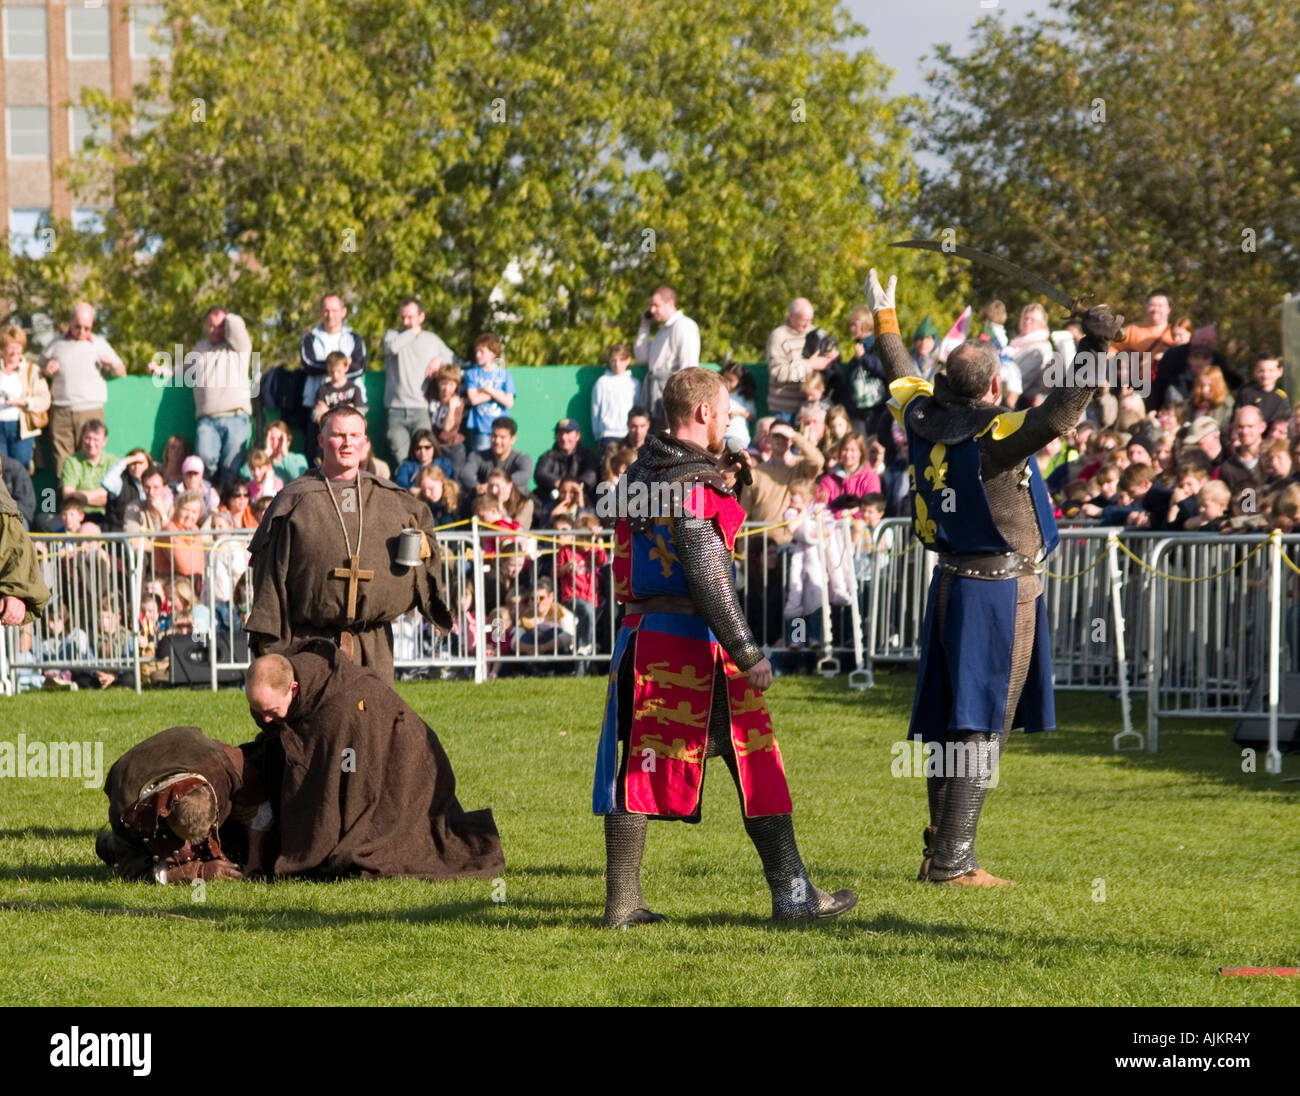 The Sheriff of Nottingham claims victory after a battle with Robin Hood at the Robin Hood Pageant, Nottingham Castle - Stock Image